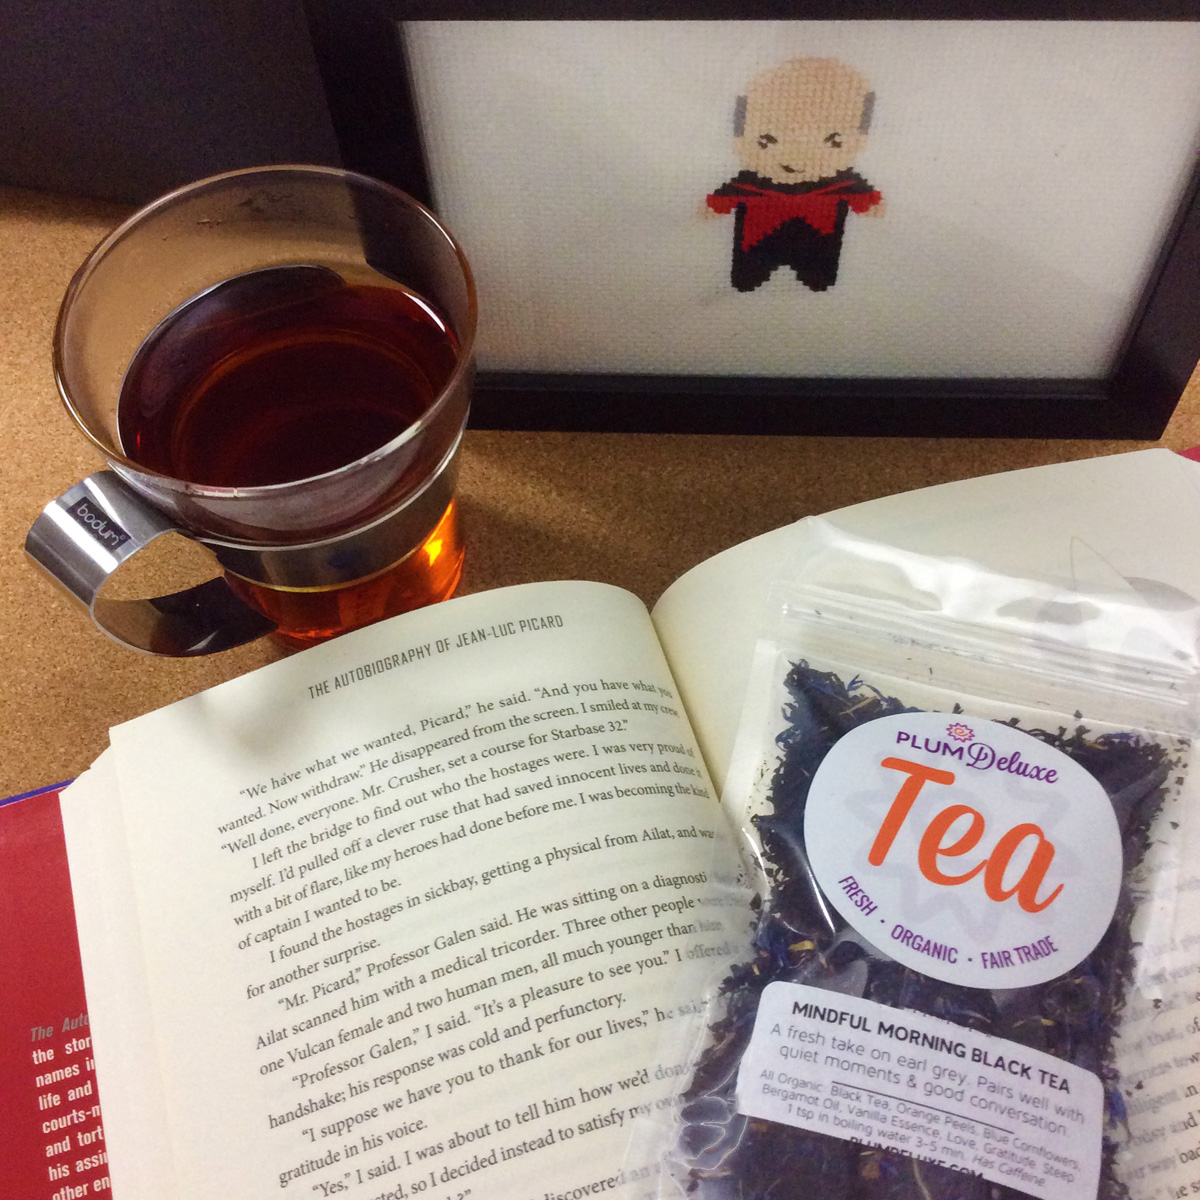 The Autobiography of Jean-Luc Picard lays open next to a cup of tea, a cross stitch of Picard, and a bag of loose leaf Earl Grey tea.